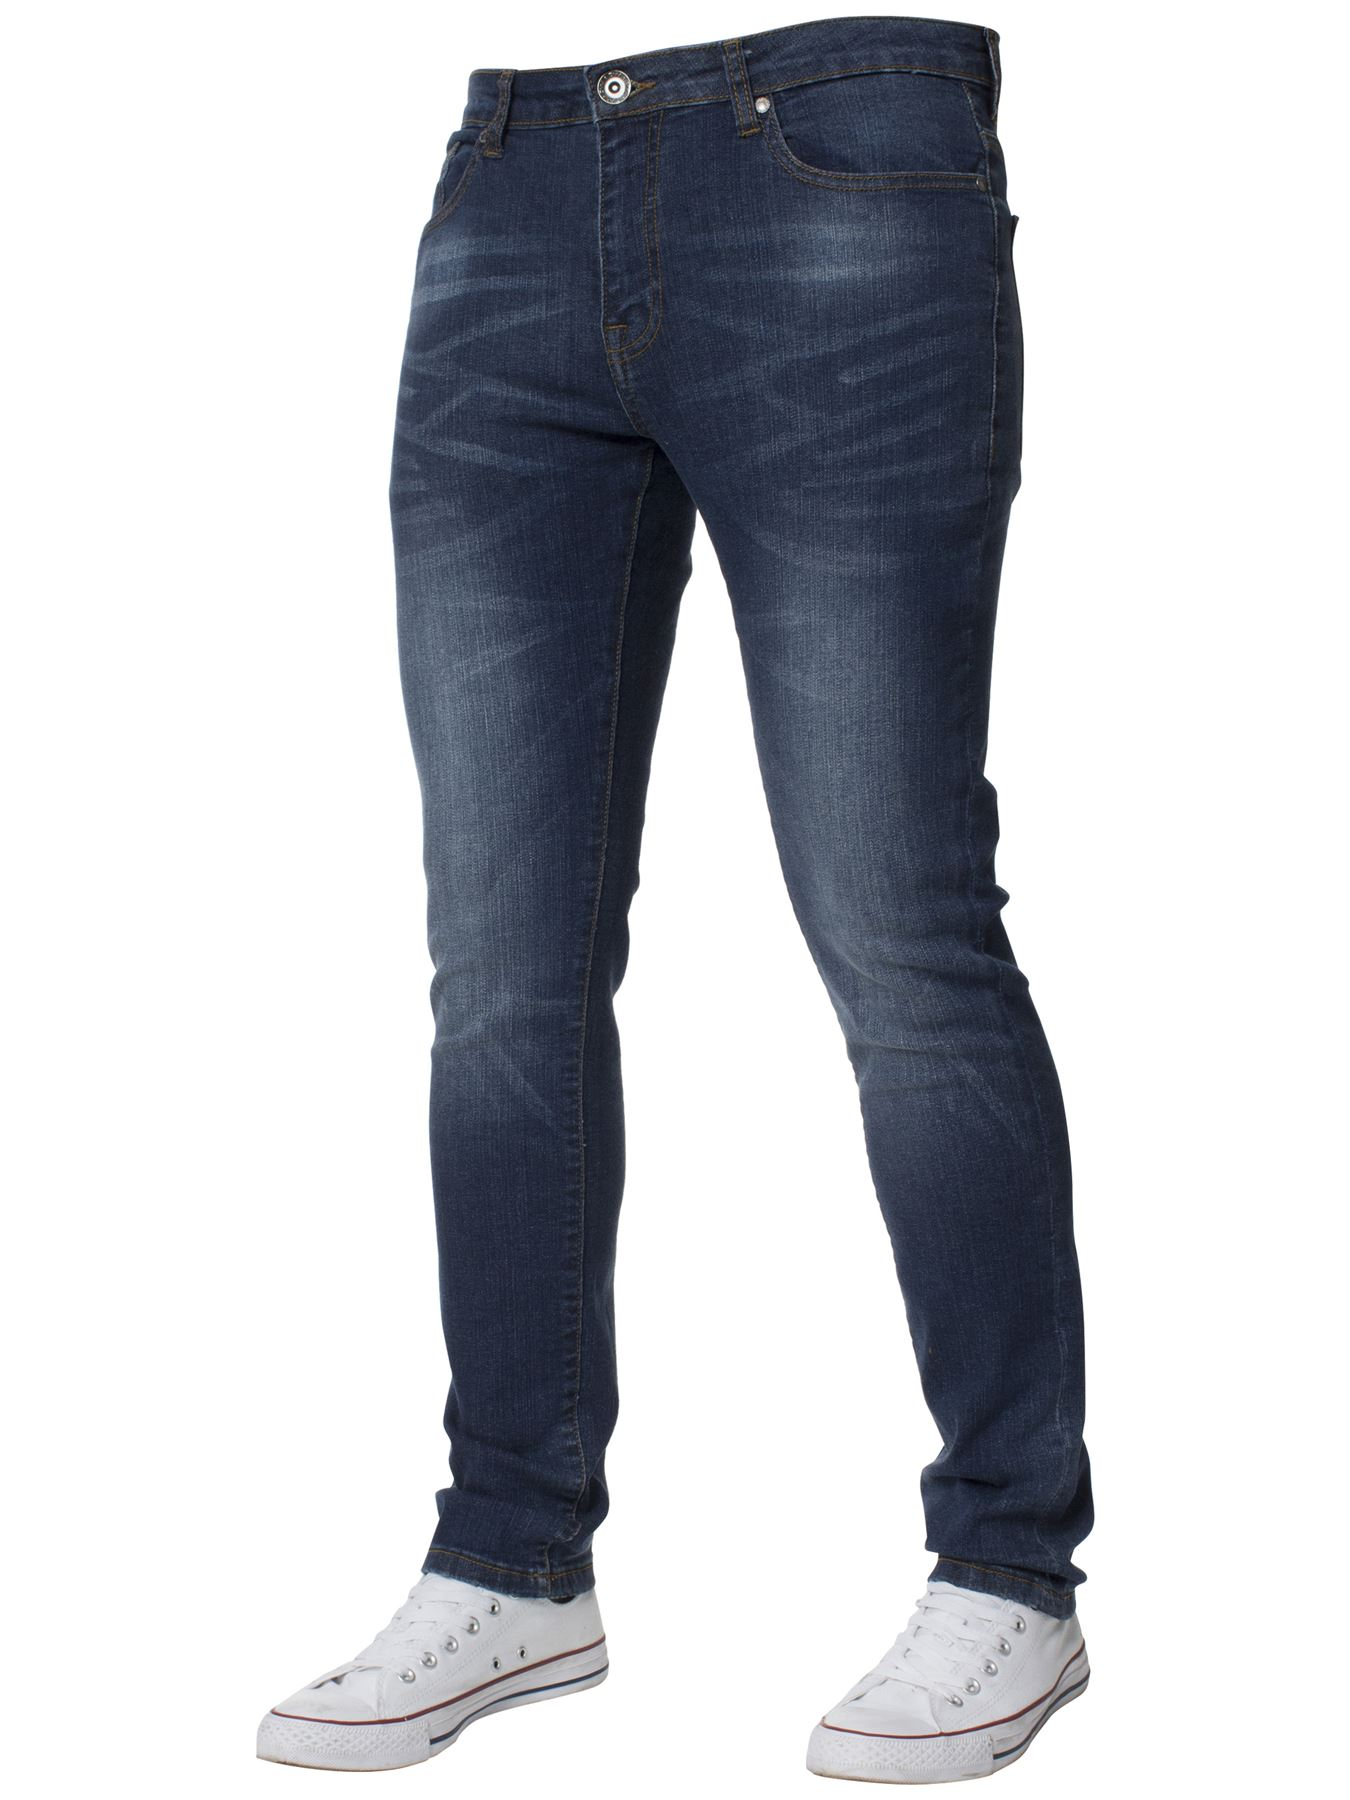 Mens-Skinny-Stretch-Jeans-Slim-Fit-Flex-Denim-Trousers-Pants-King-Sizes-by-Kruze thumbnail 9